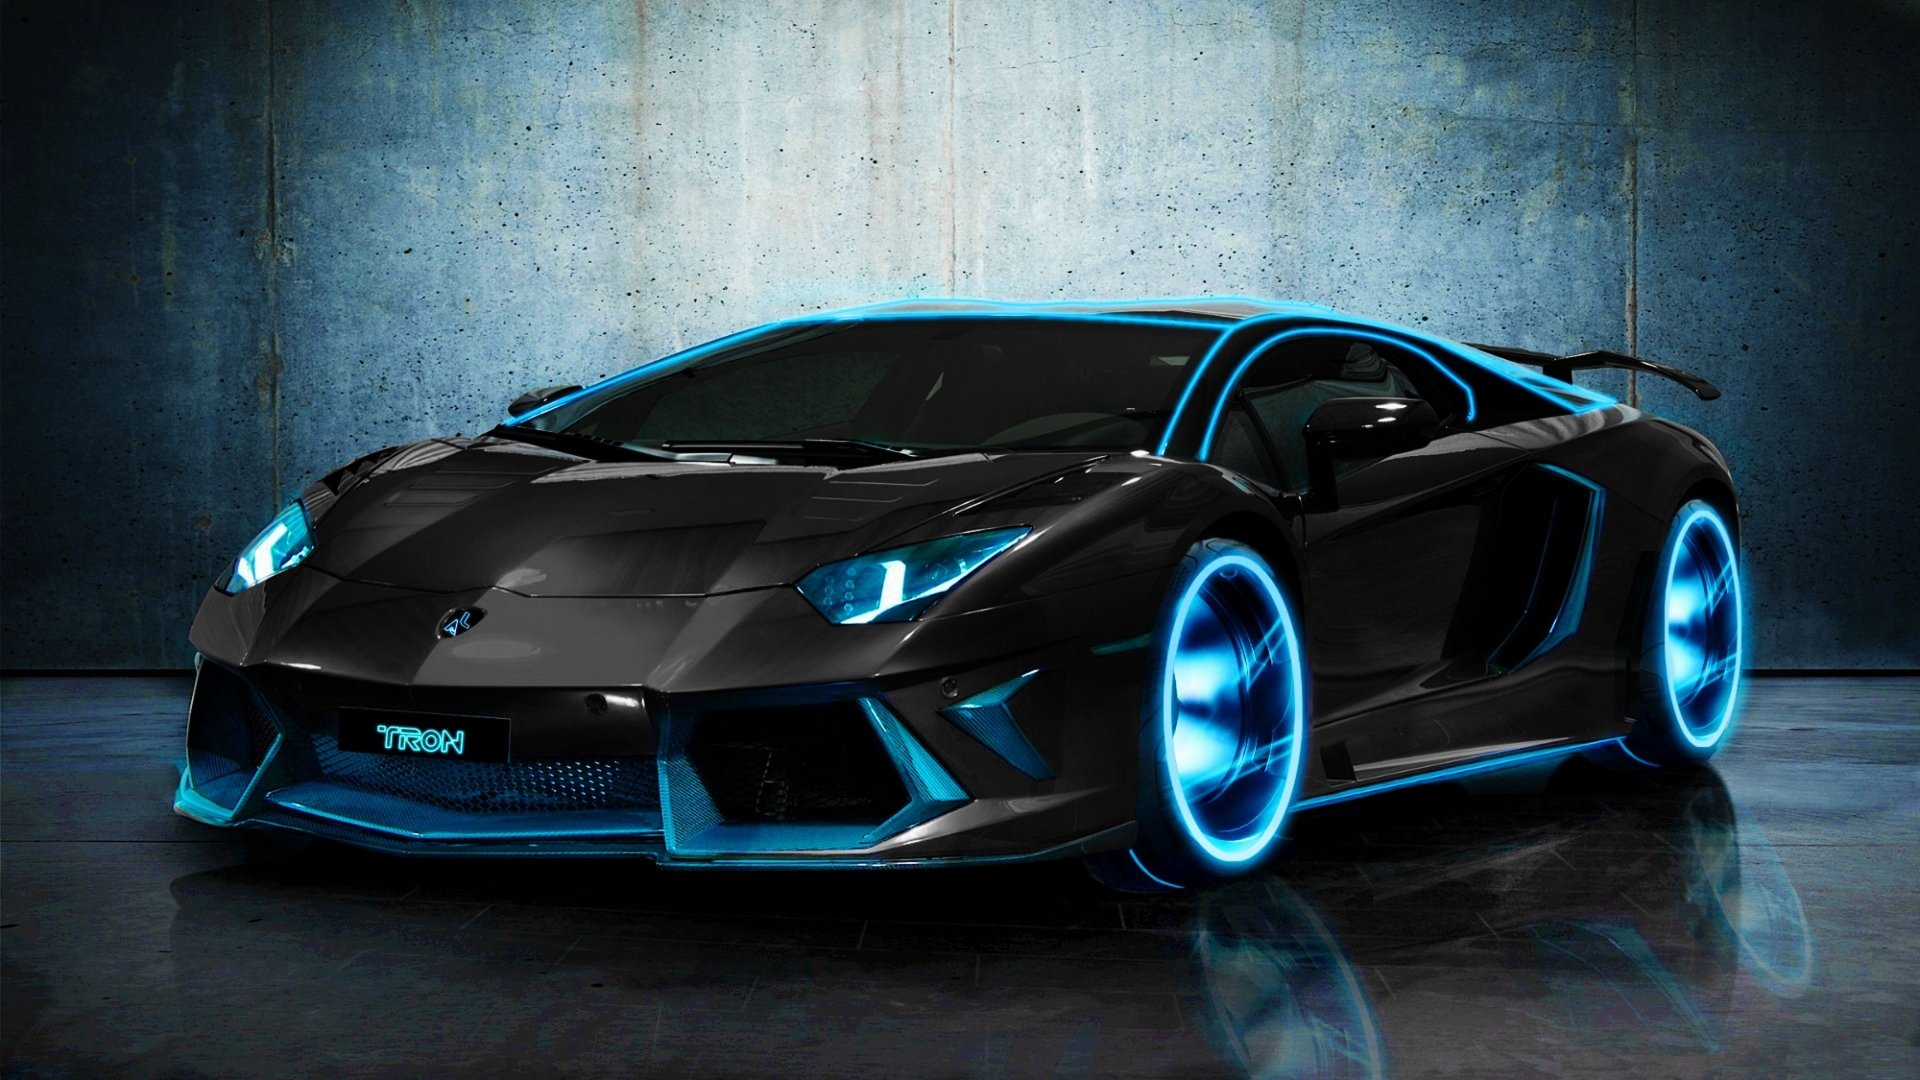 Download TRON Lamborghini Aventador HD Wallpaper 1818 Full Size 1920x1080